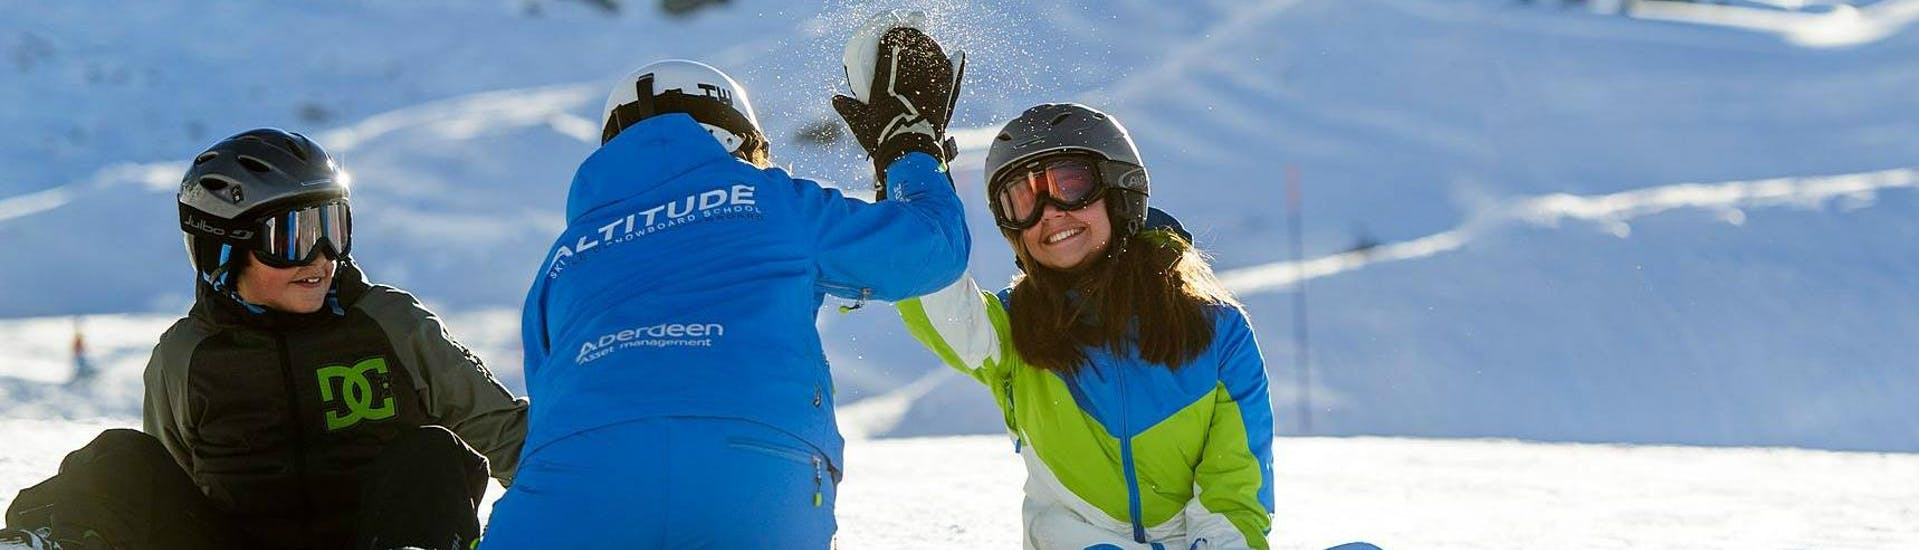 A snowboard instructor is high-fiving her student during the Private Snowboarding Lessons for Kids & Adults - All Levels with Altitude Ski School Zermatt.